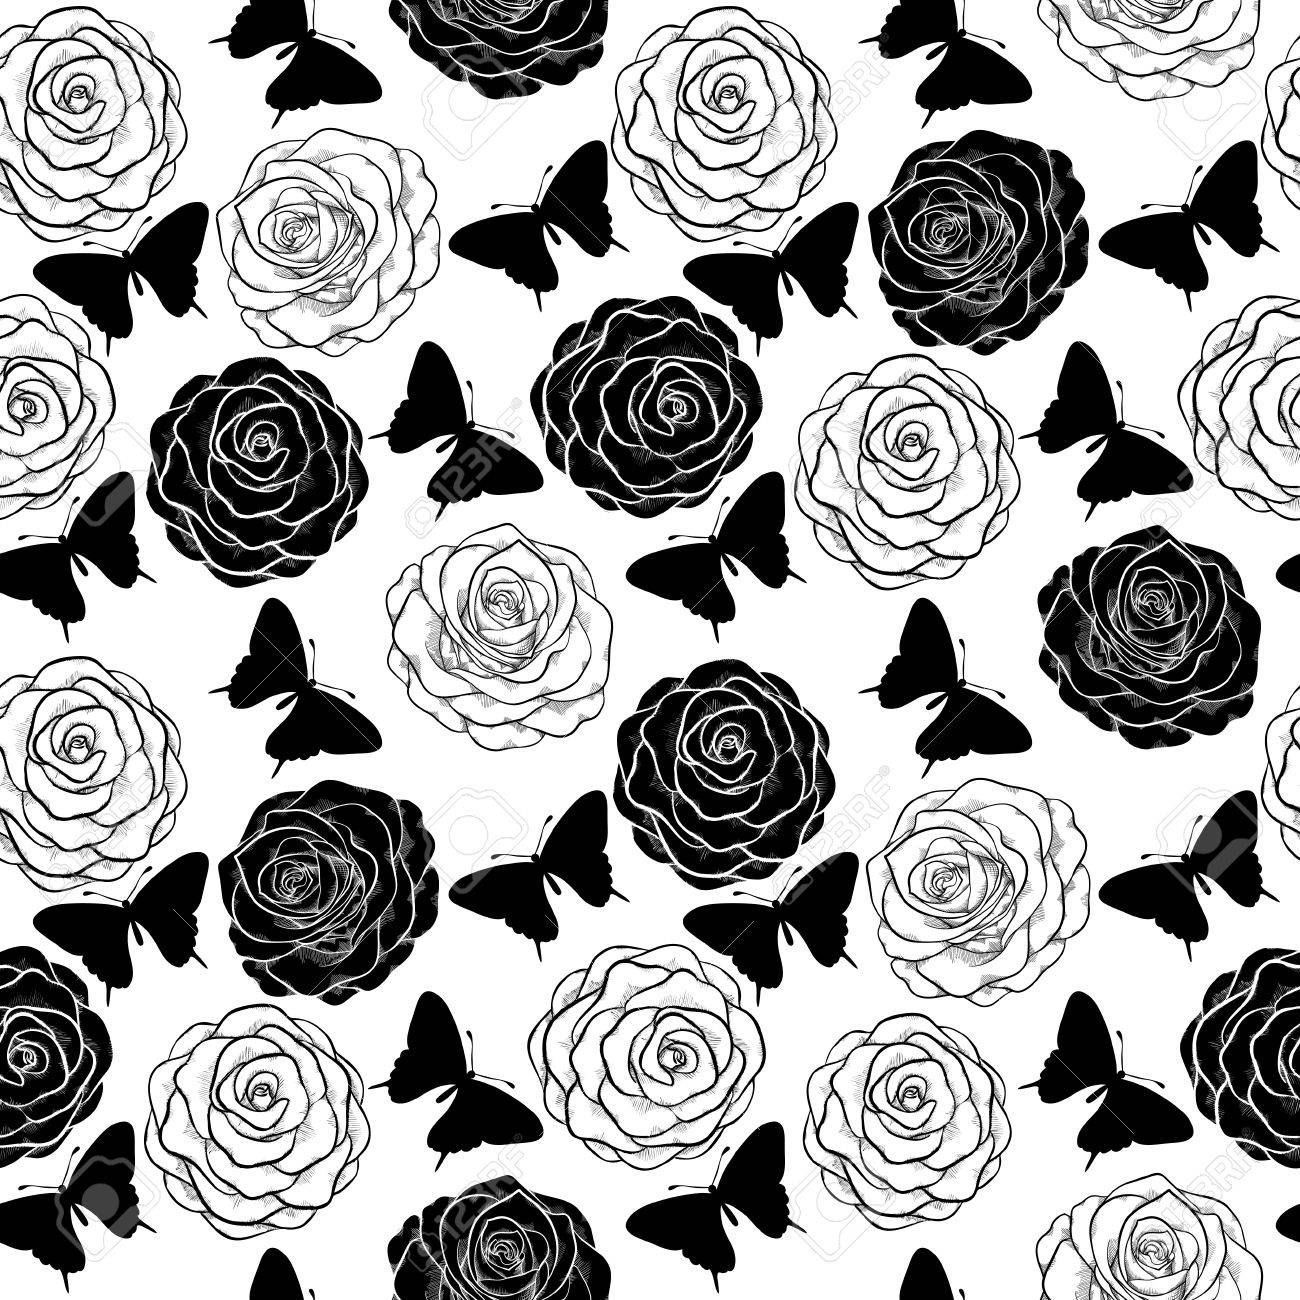 1300x1300 Beautiful Seamless Background With Monochrome Black And White